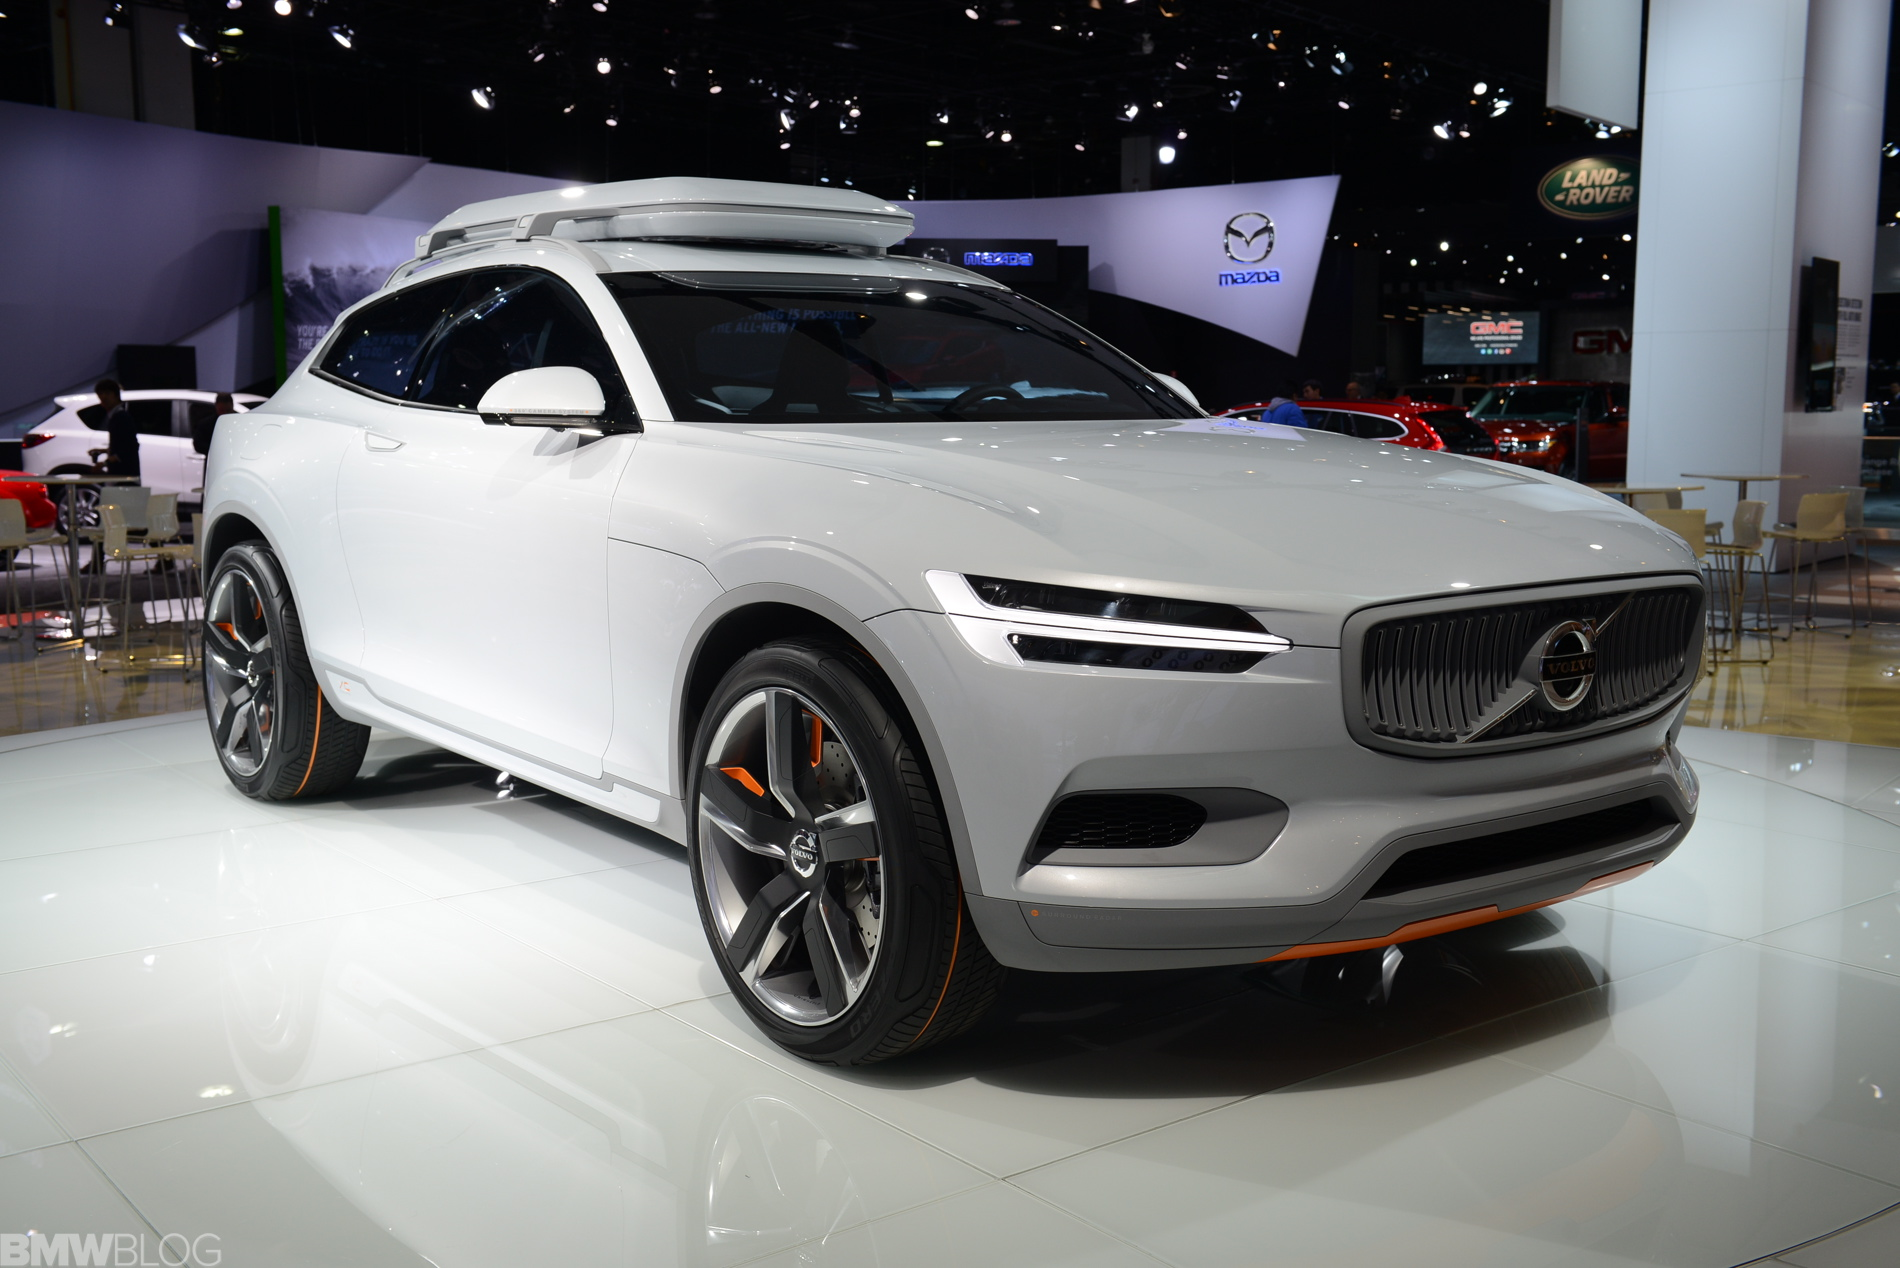 Defeat The Elements With The Volvo Xc Image 3